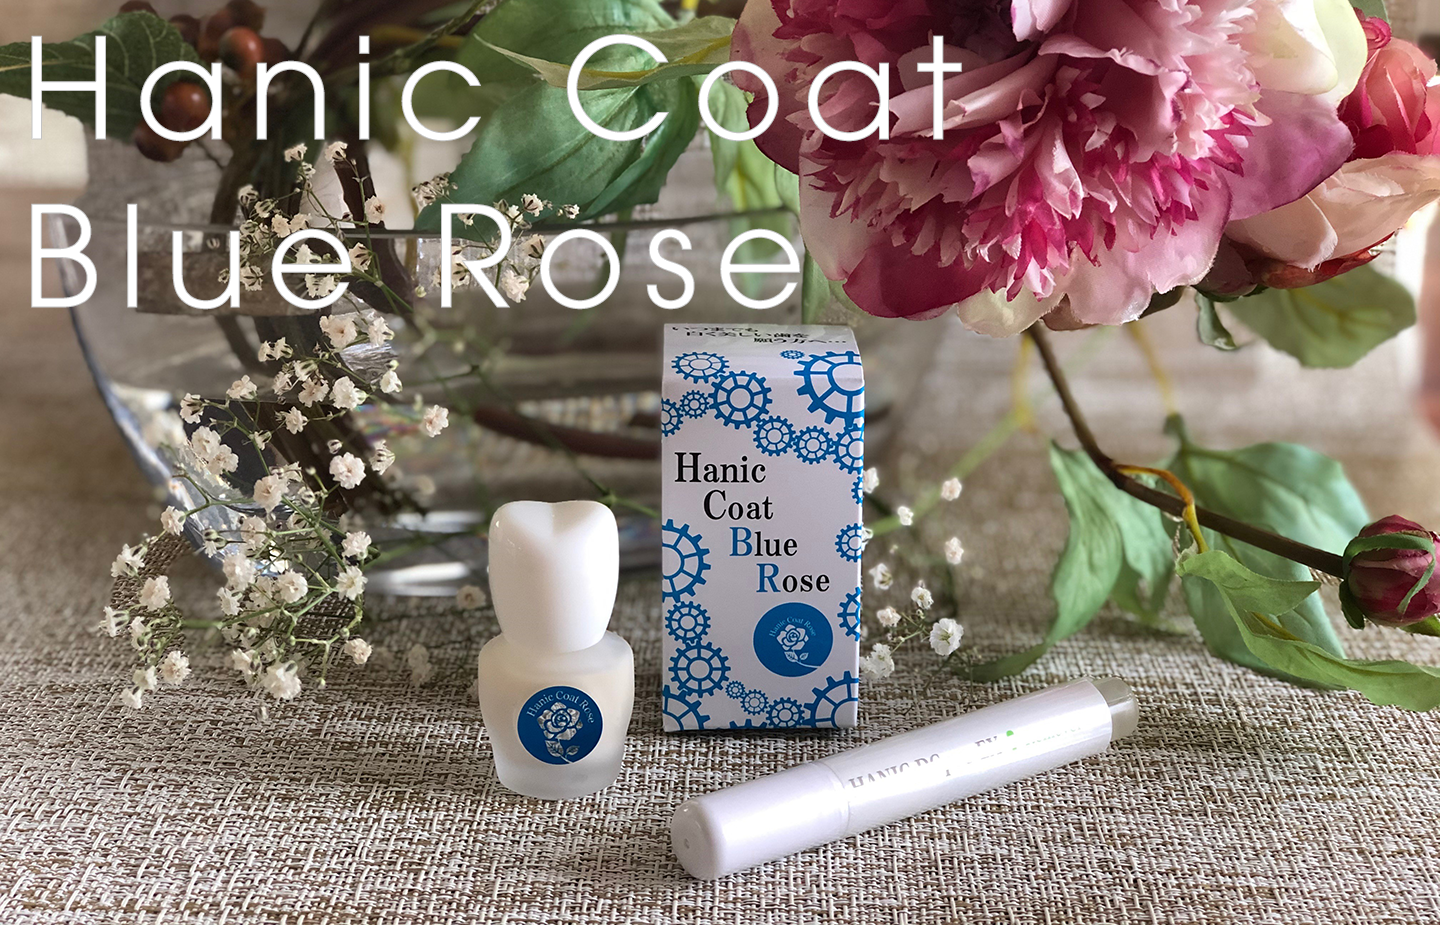 Hanic Cort Blue Rose